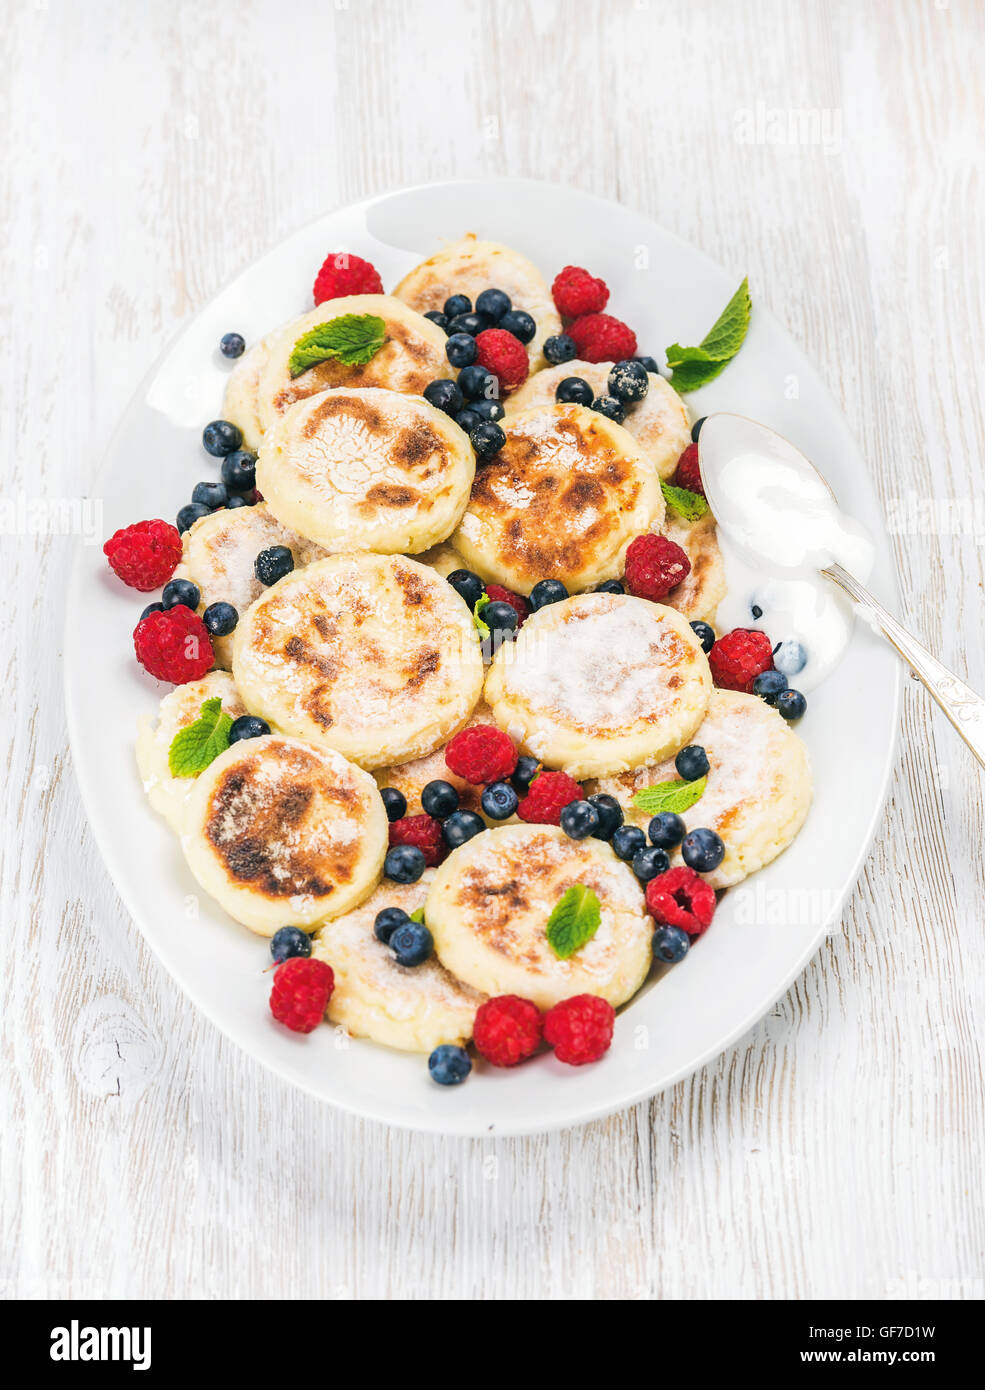 Syrniki or cottage cheese pancakes with fresh forest berries and sour cream sauce in serving dish over white wooden - Stock Image